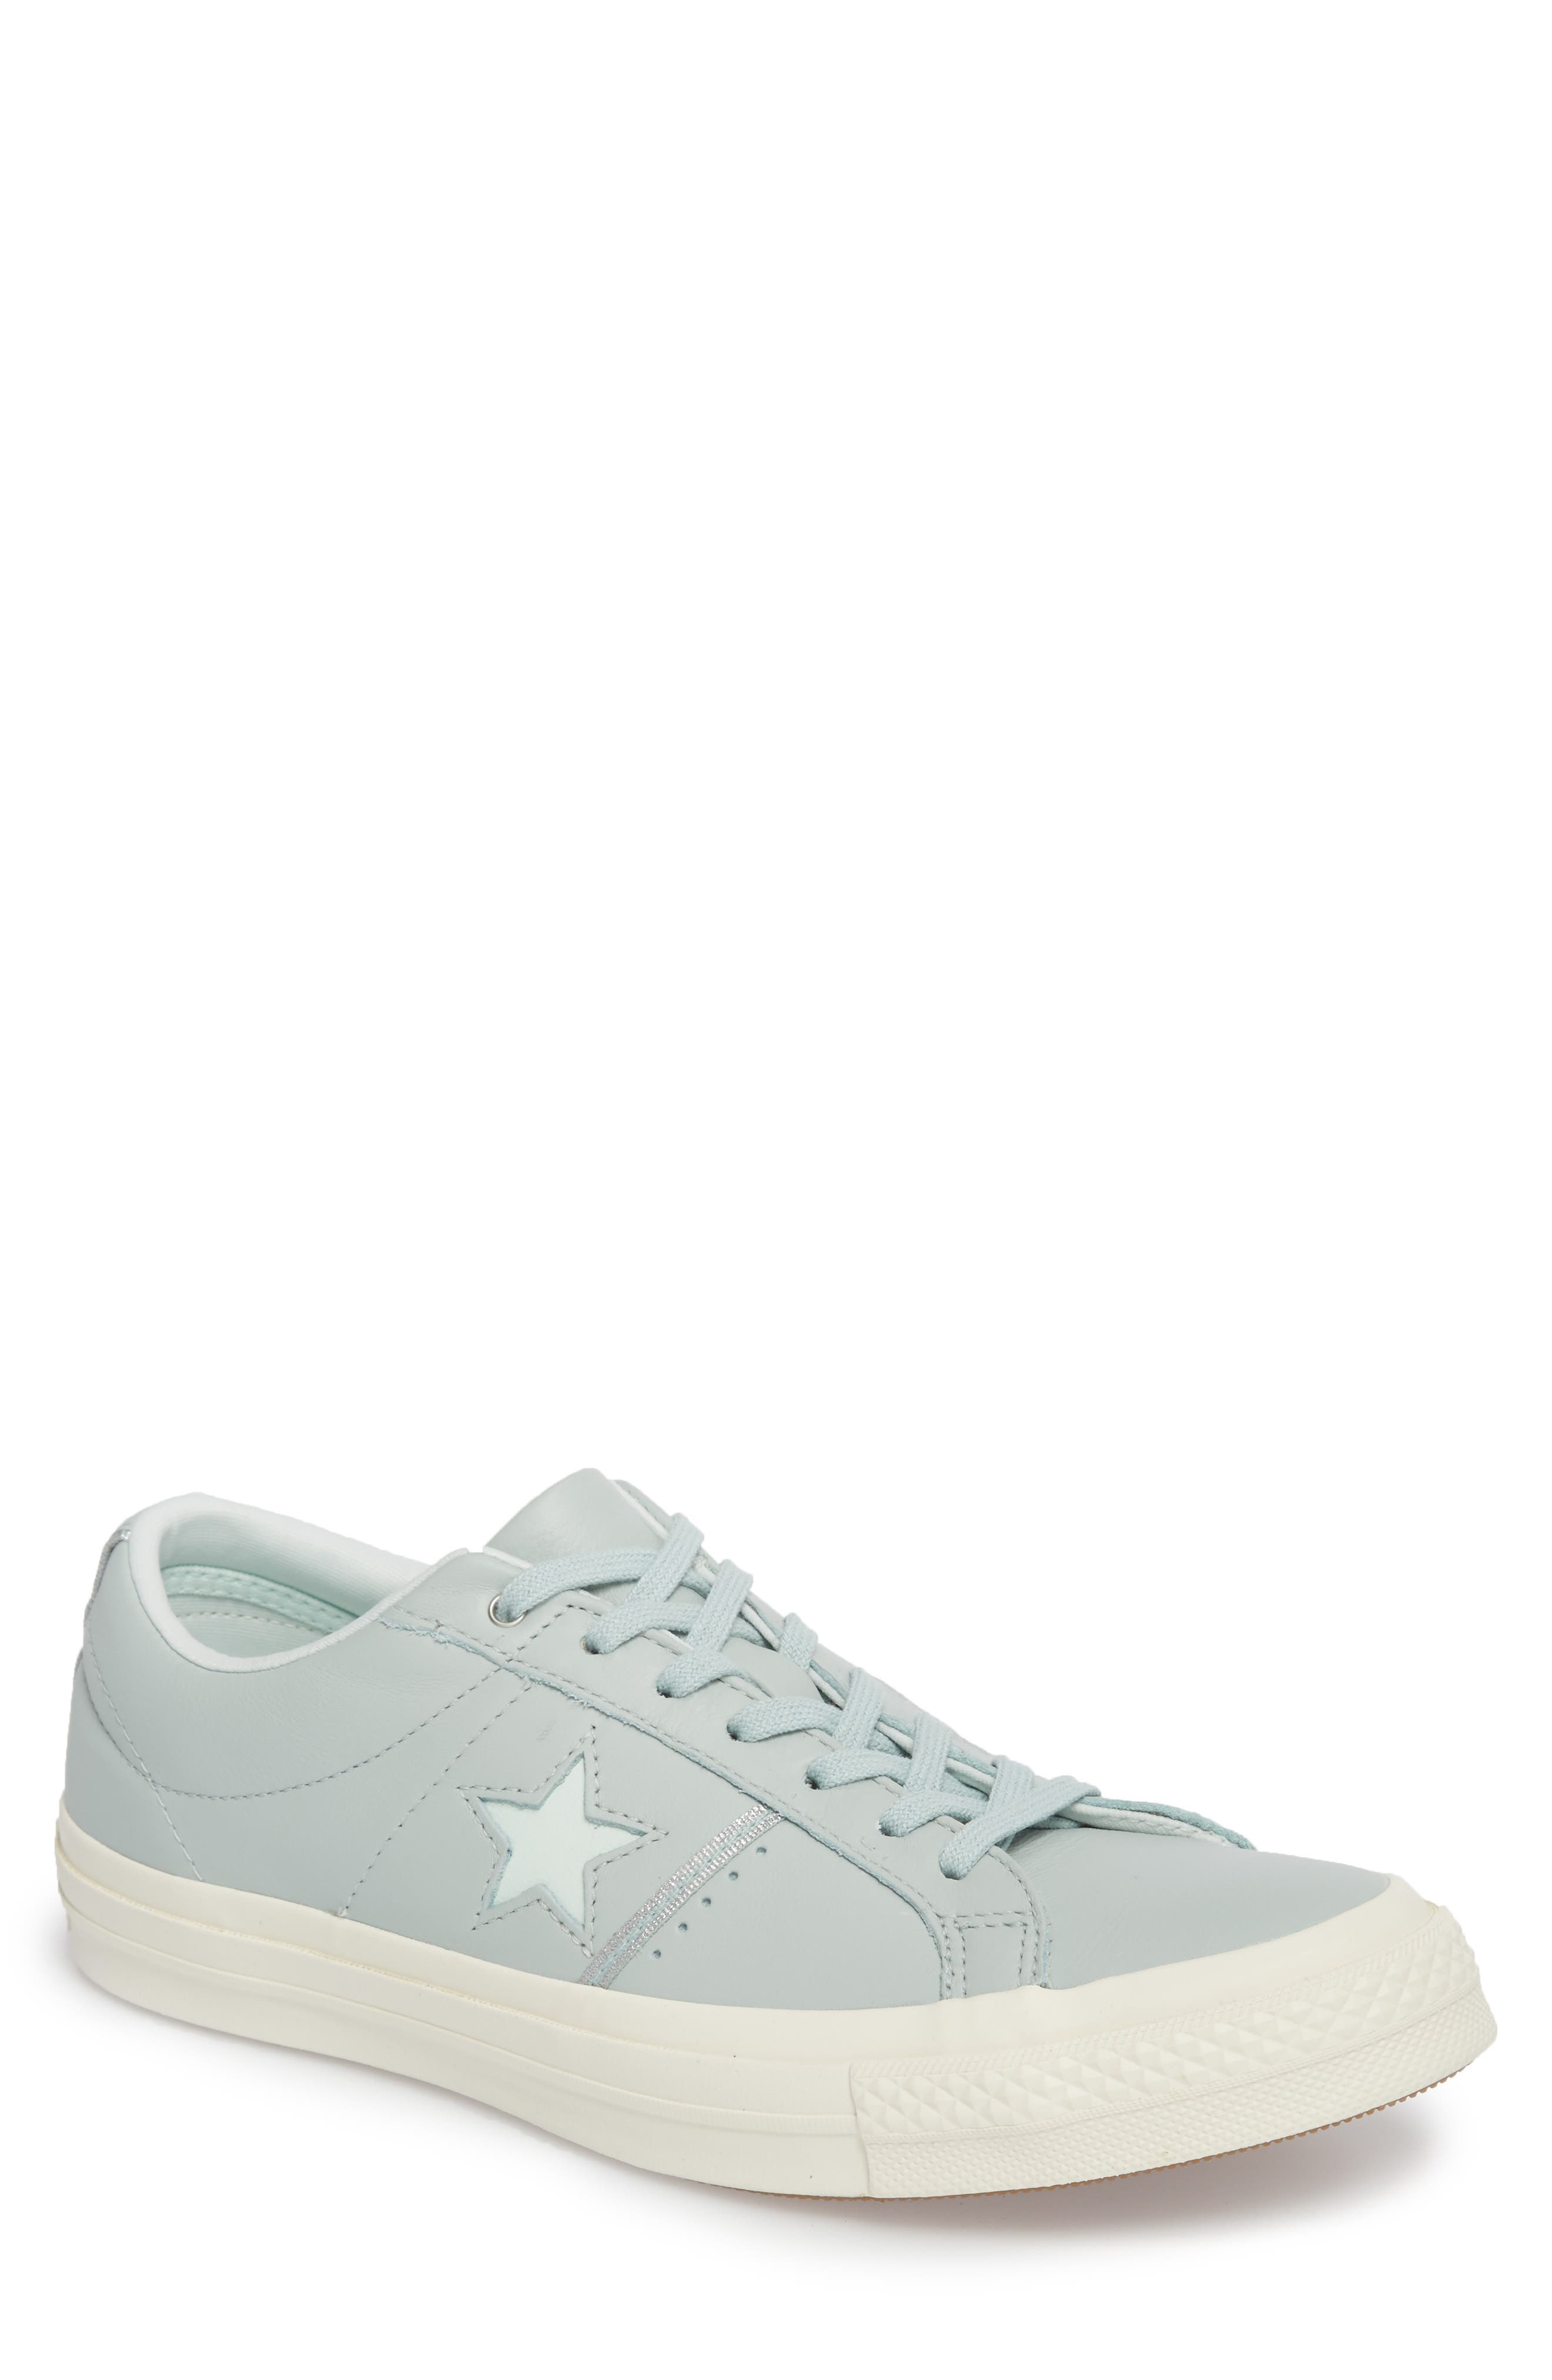 Alternate Image 1 Selected - Converse Chuck Taylor® One Star Piping Sneaker (Men)